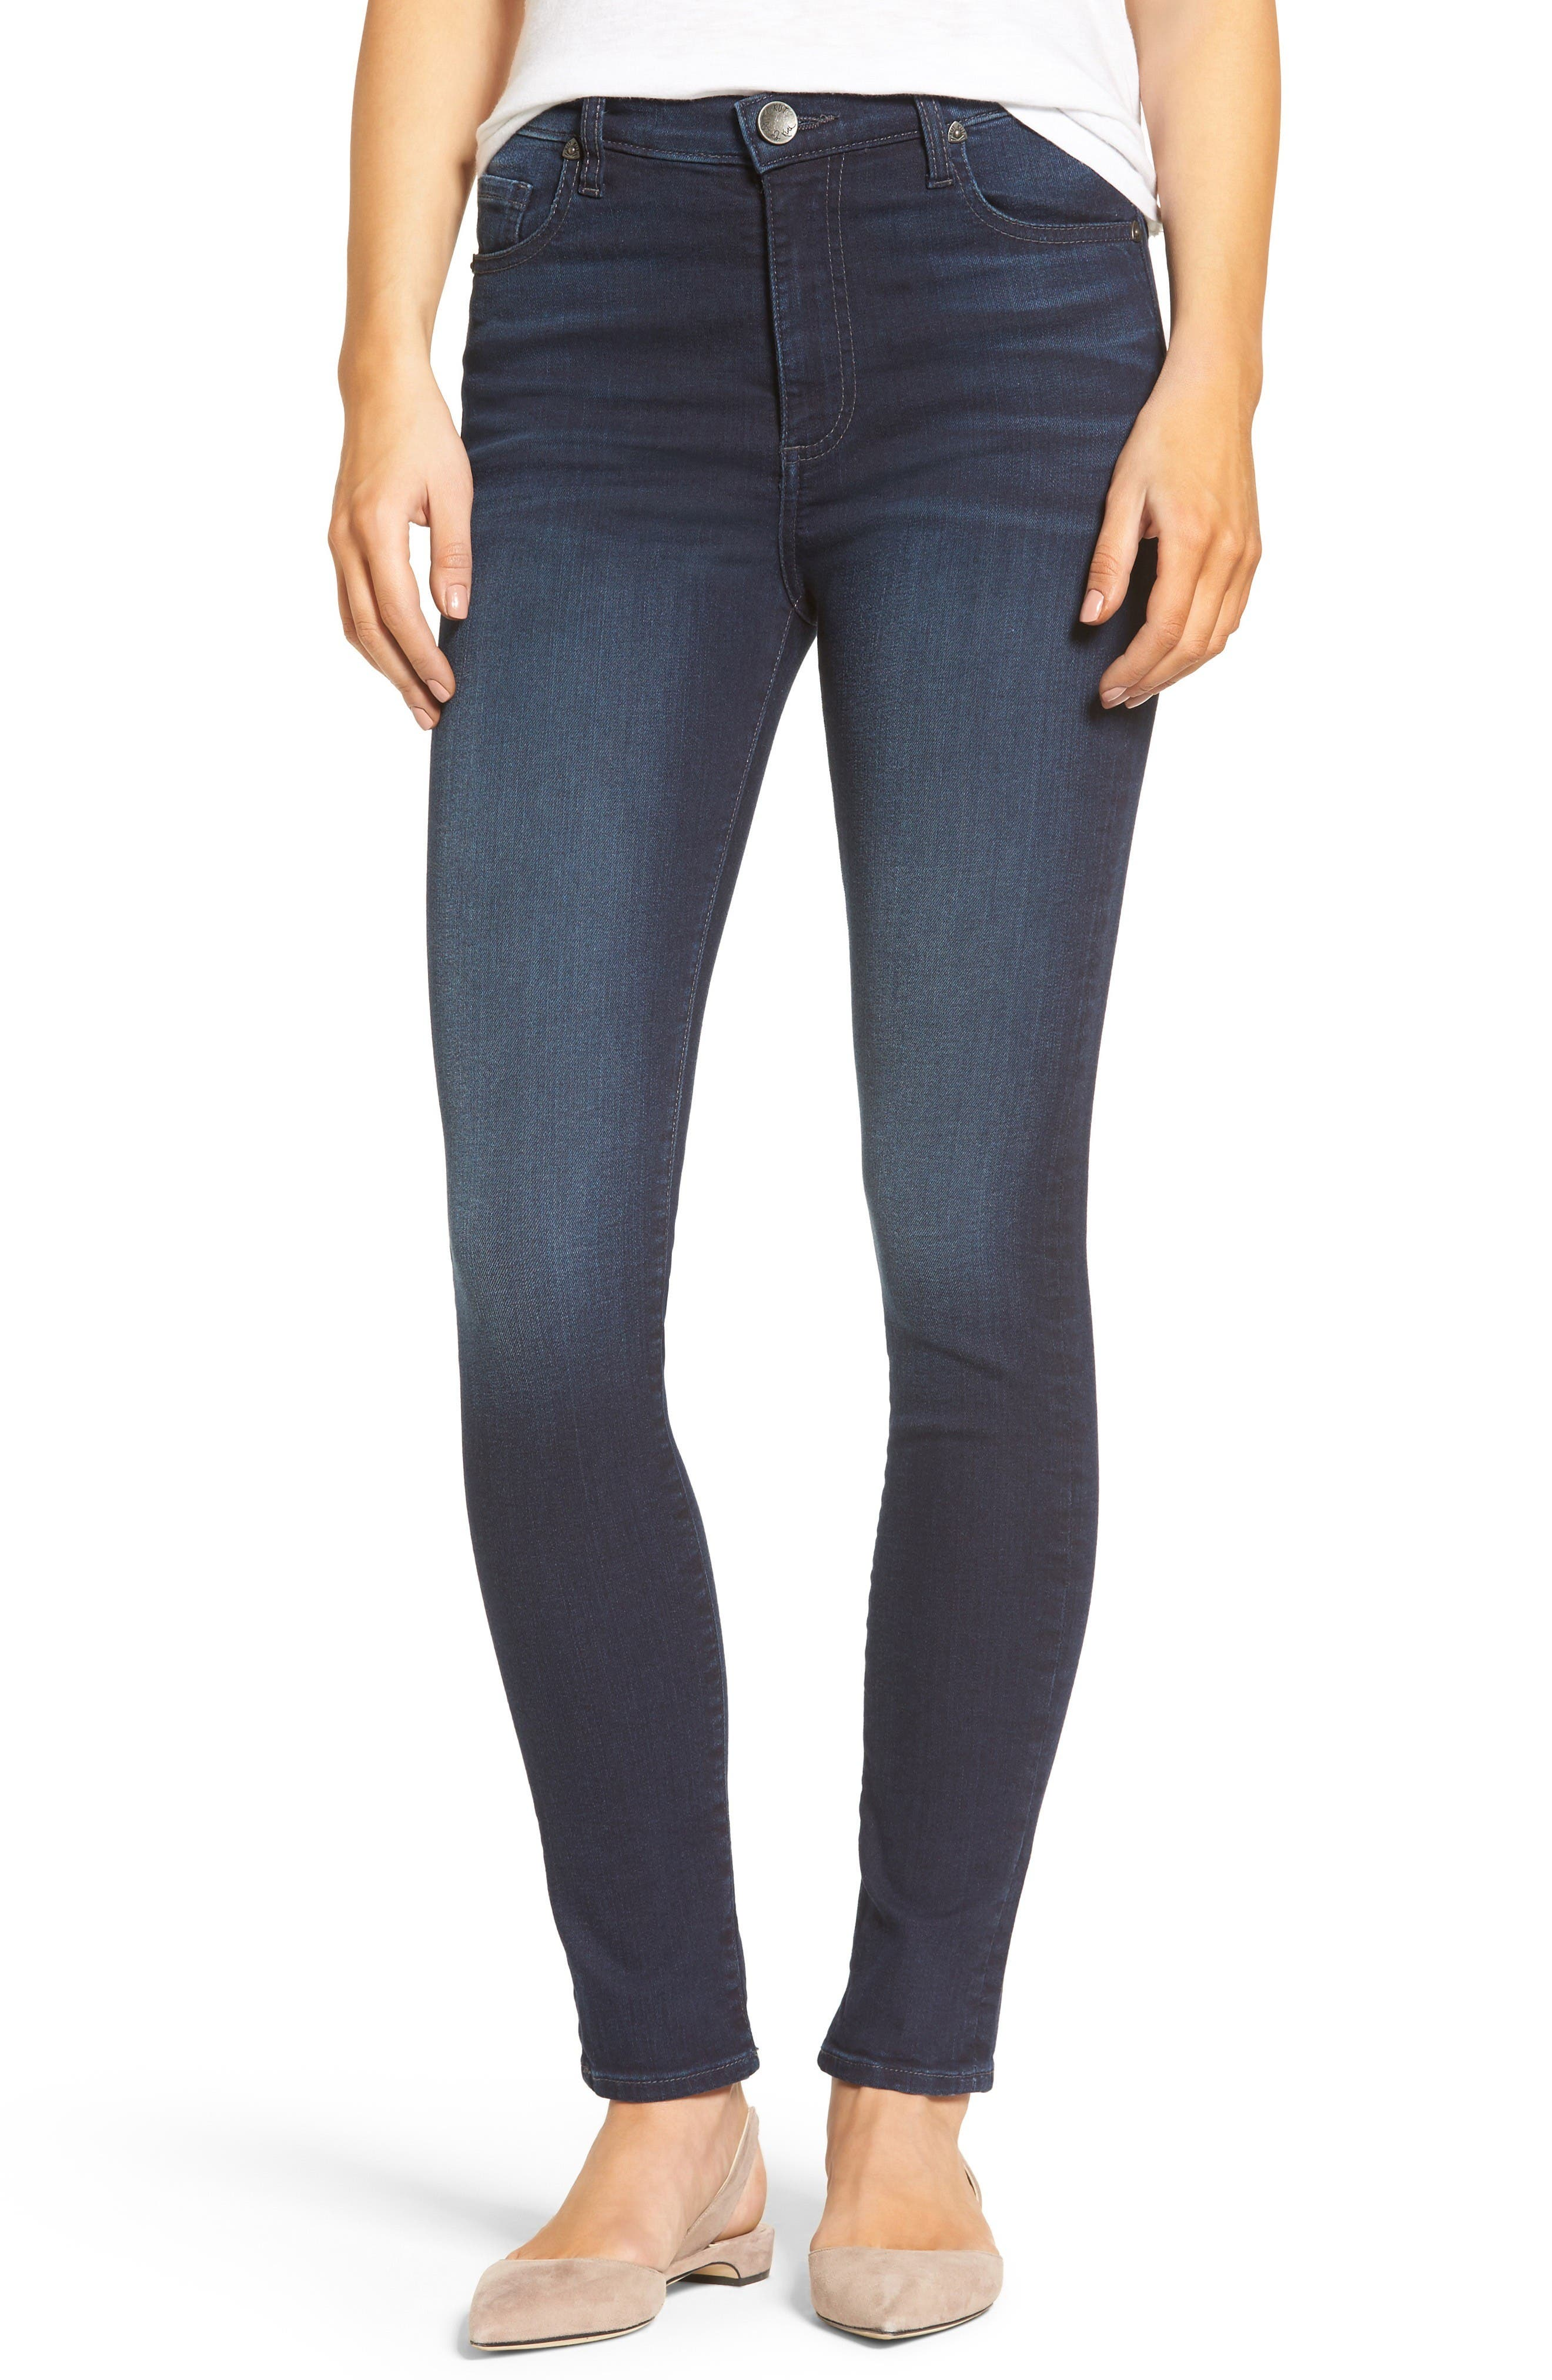 Alternate Image 1 Selected - KUT from the Kloth Mia High Waist Skinny Jeans (Regular & Petite) (Pacable)